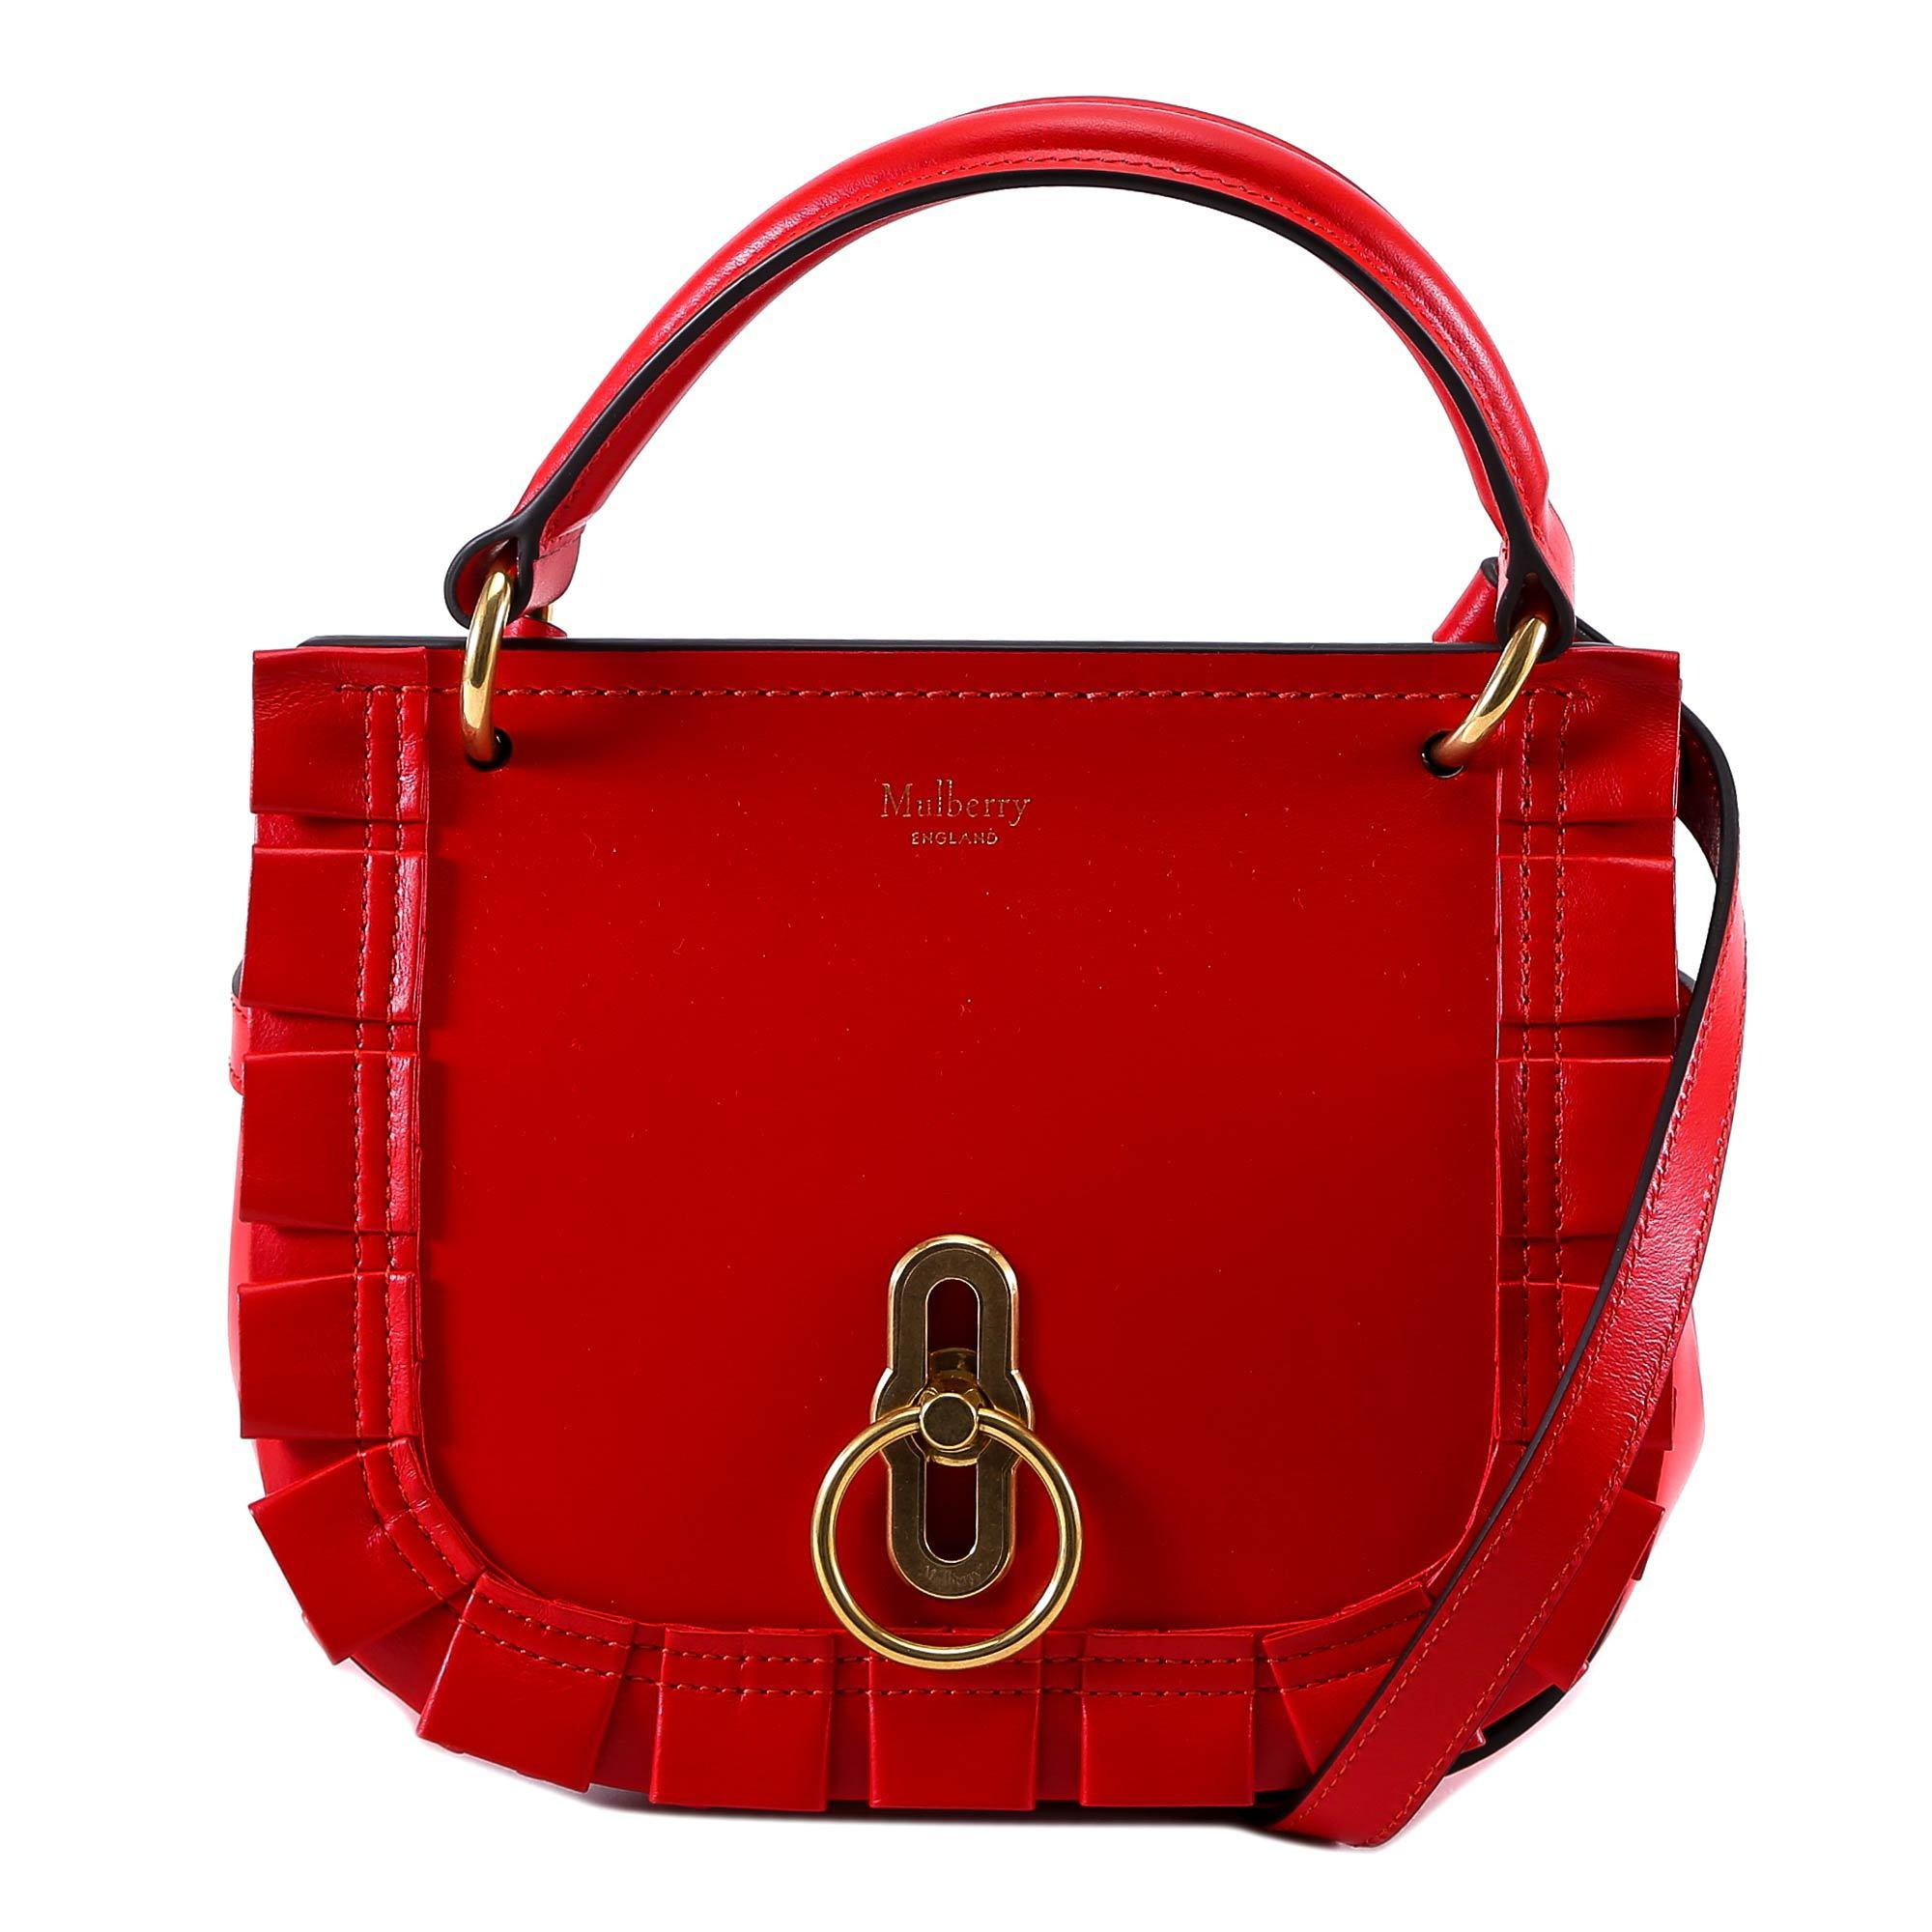 0ea3027ff46 Lyst - Mulberry Amberley Ruffled Satchel Bag in Red